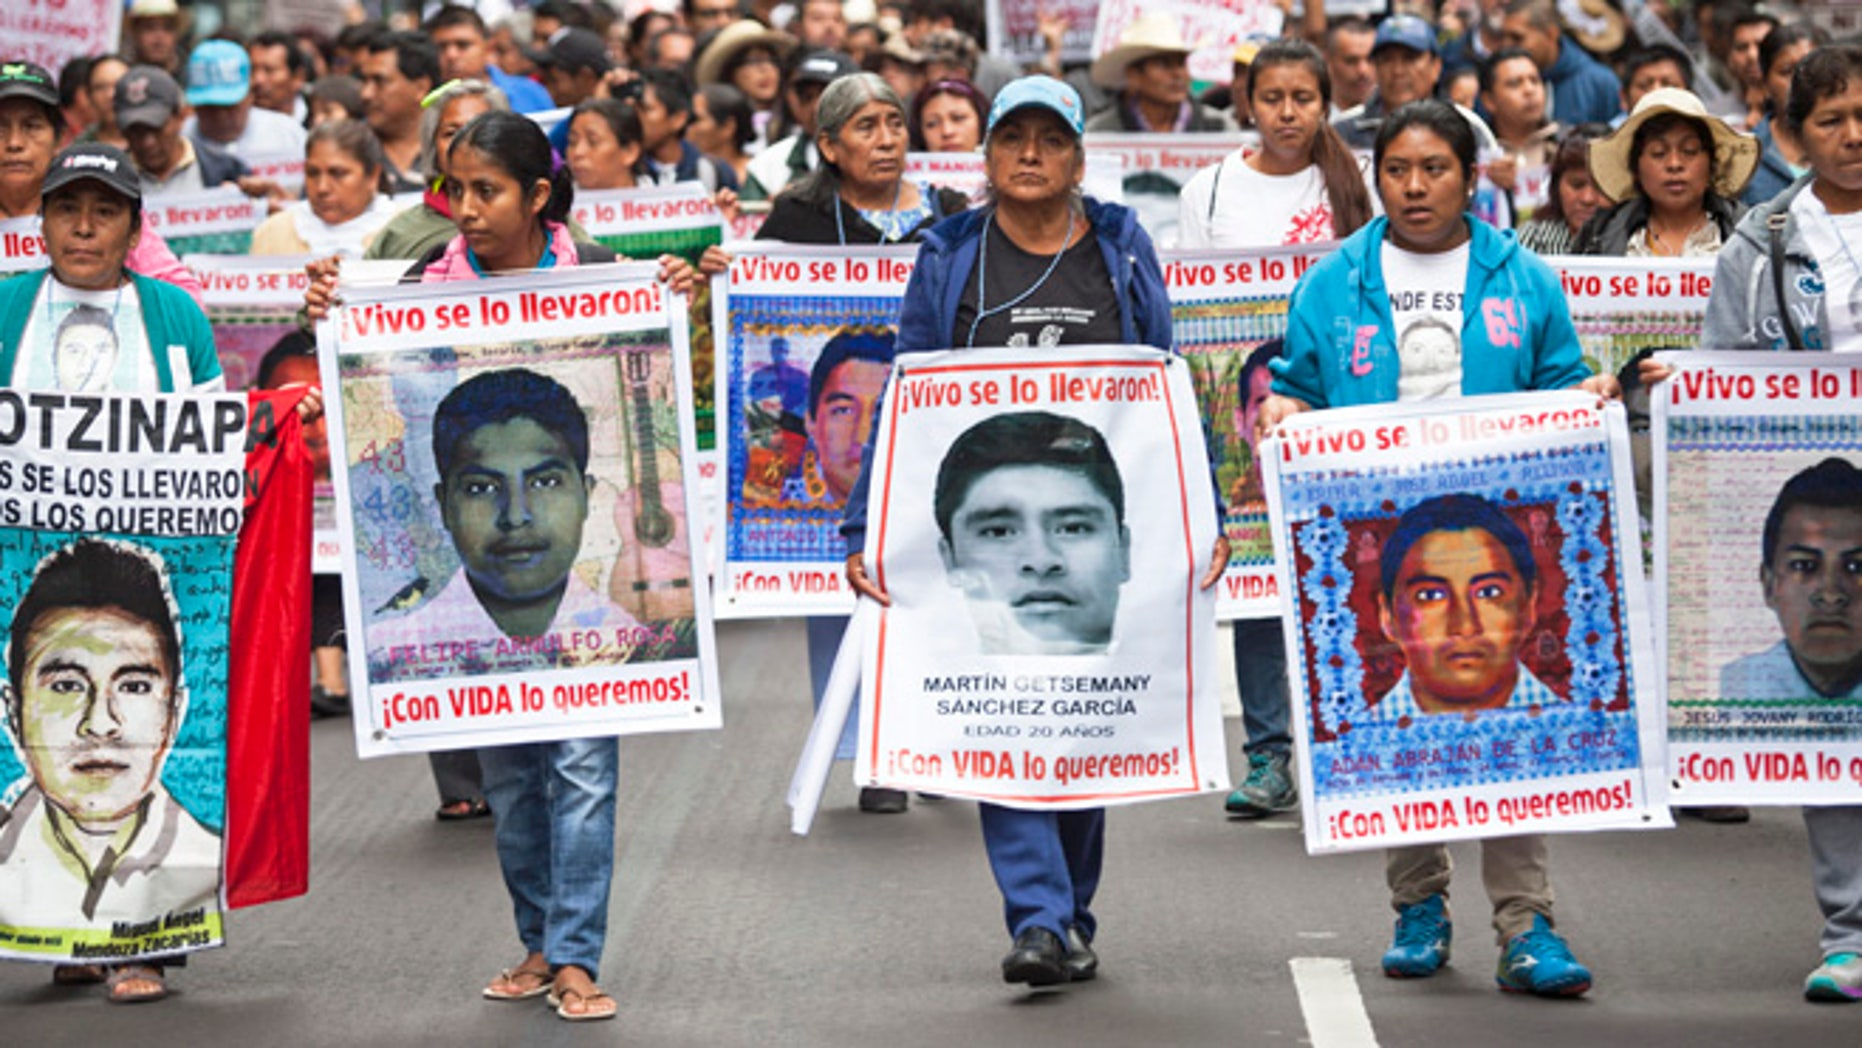 Family of 43 missing students from Ayotzinapa Normal school lead a protest, September 26, 2015 in Mexico City.